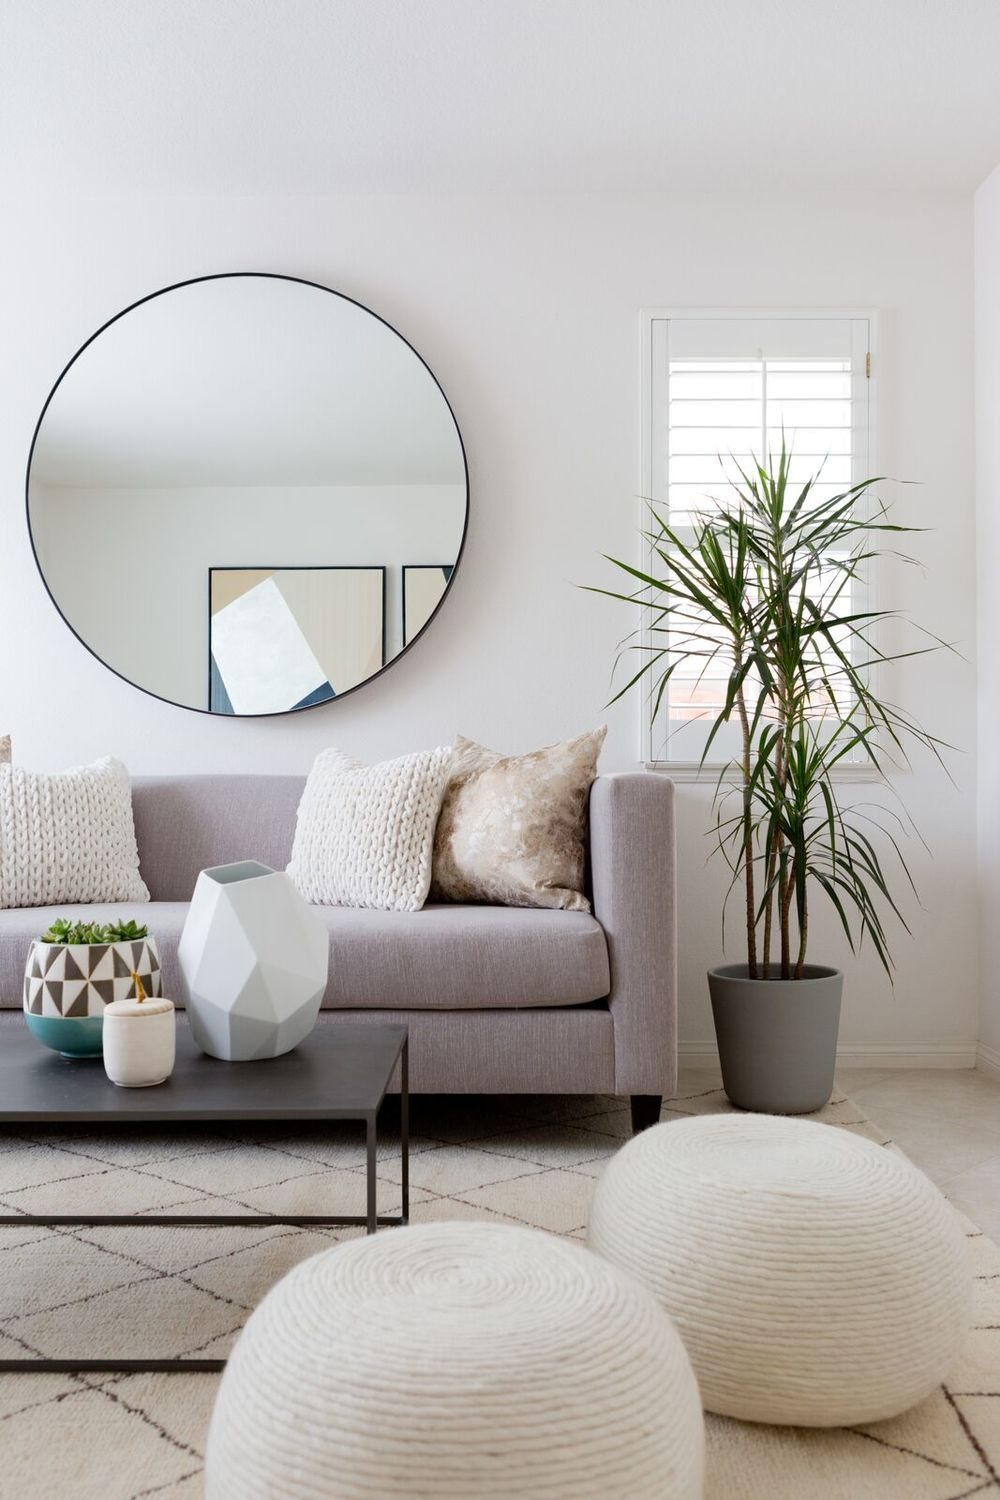 Round Mirror Grey Linen Sofa Rope Coil Ottomans Plant Etc Are